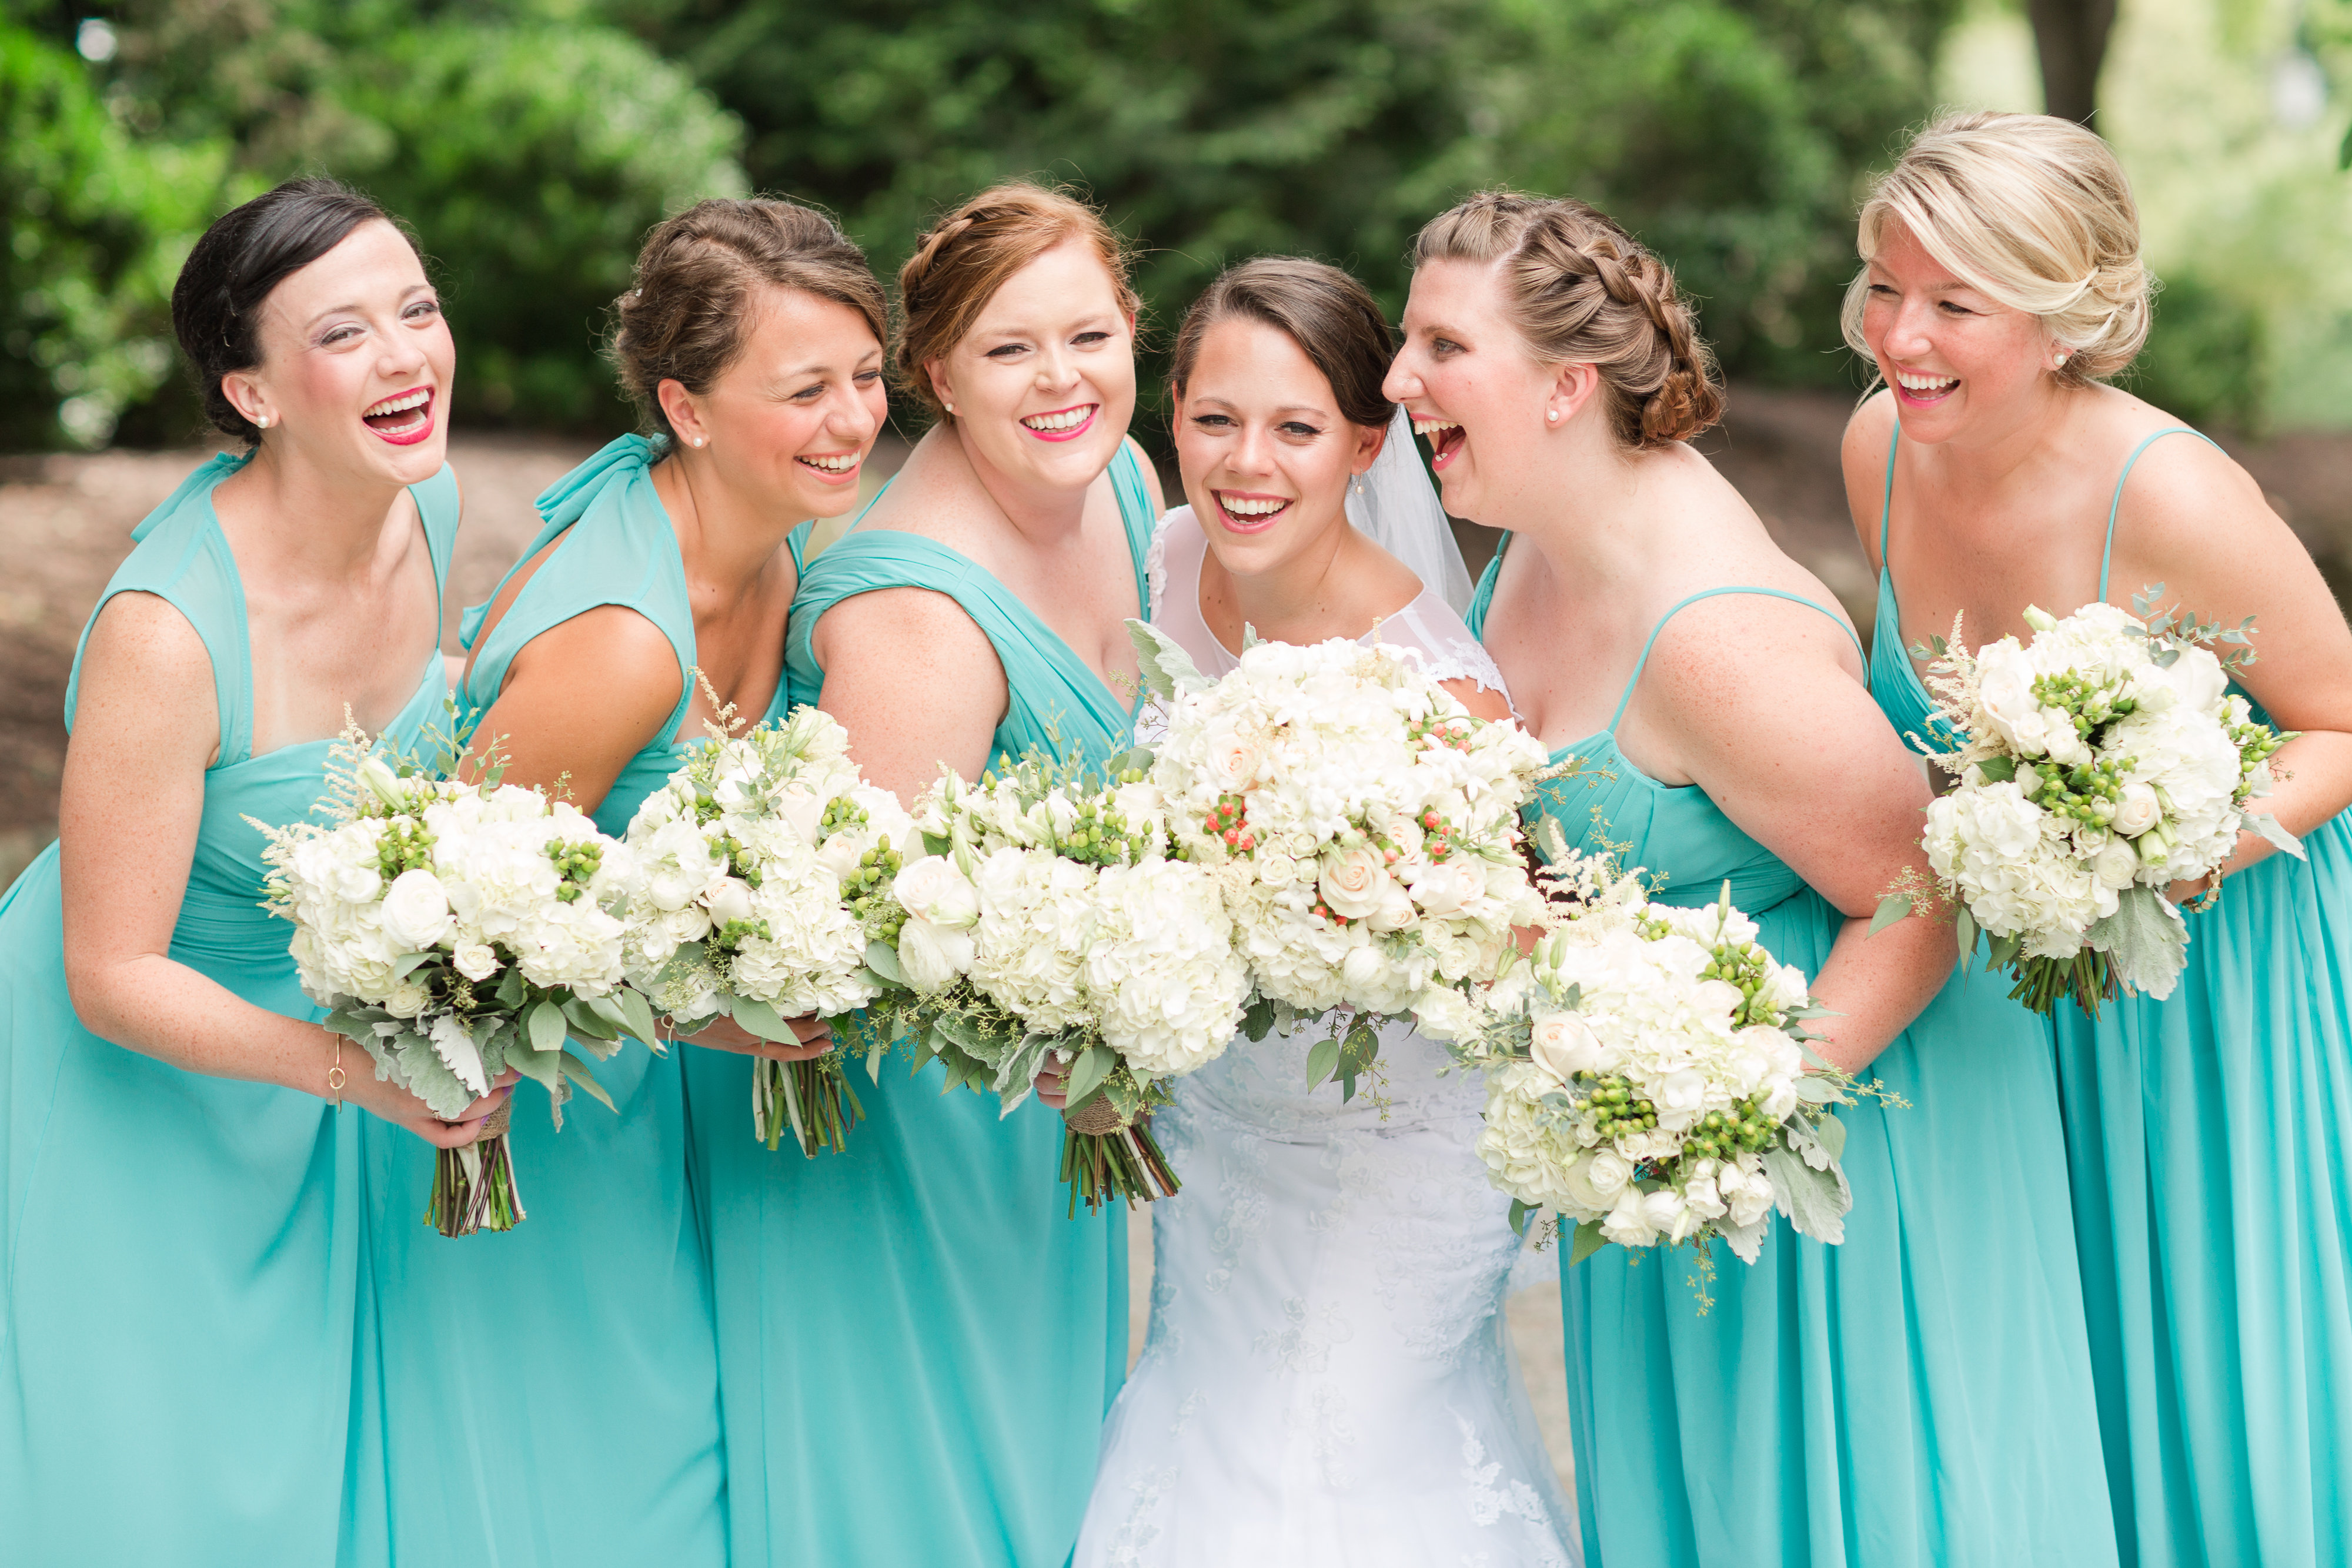 Lauren shares a happy moment with her bridesmaids